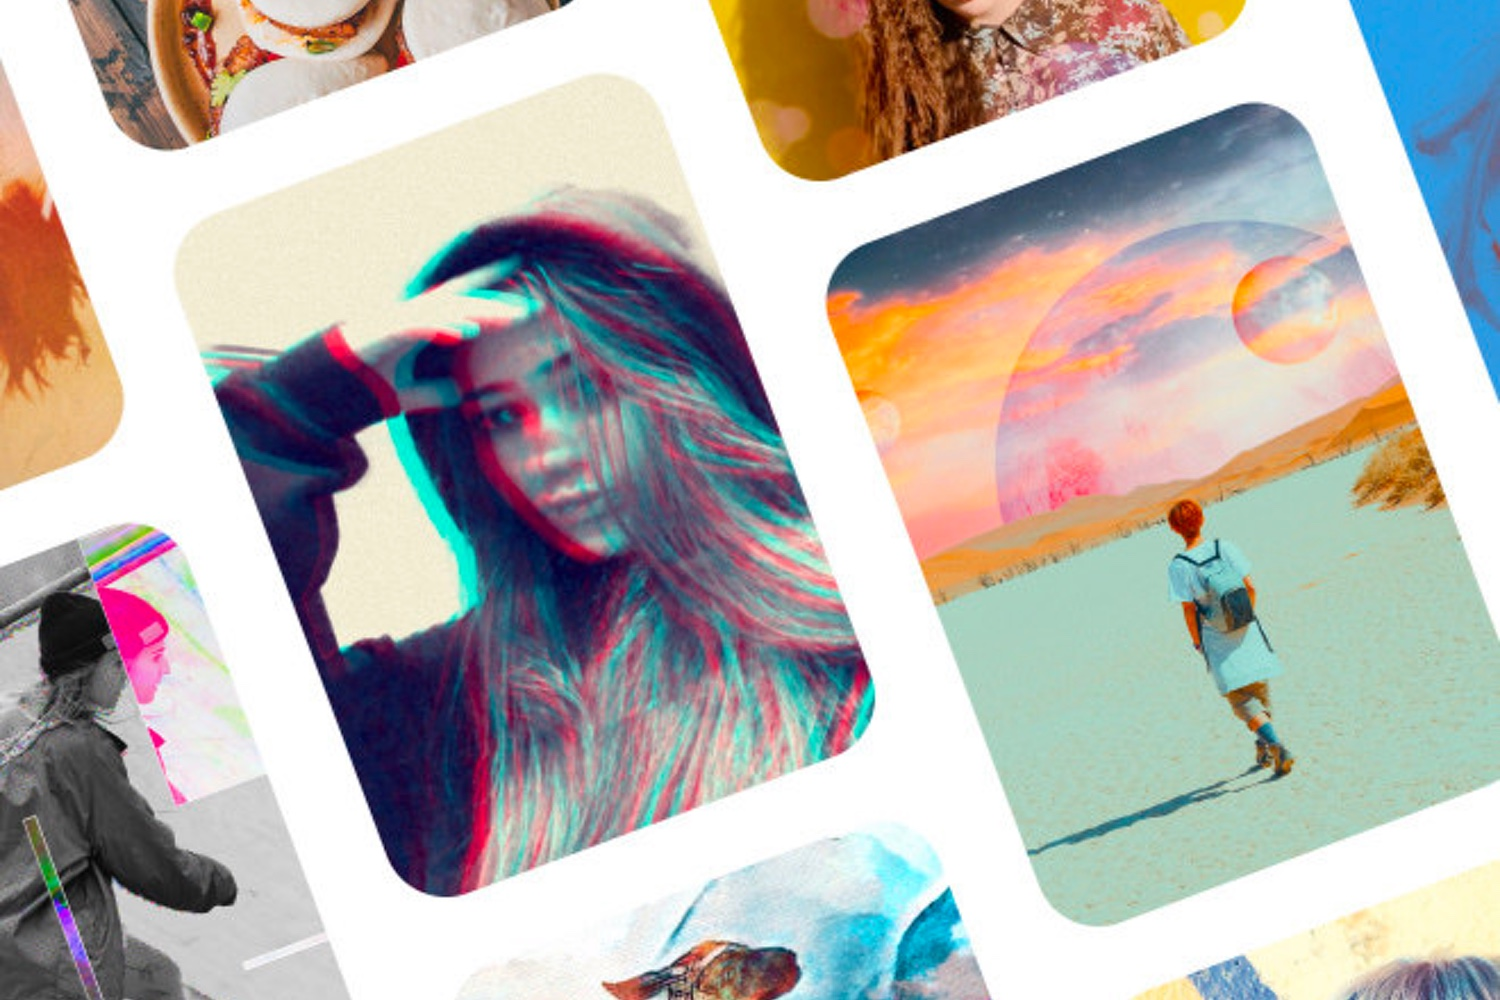 Photoshop Camera: editar fotografías en la era de Instagram